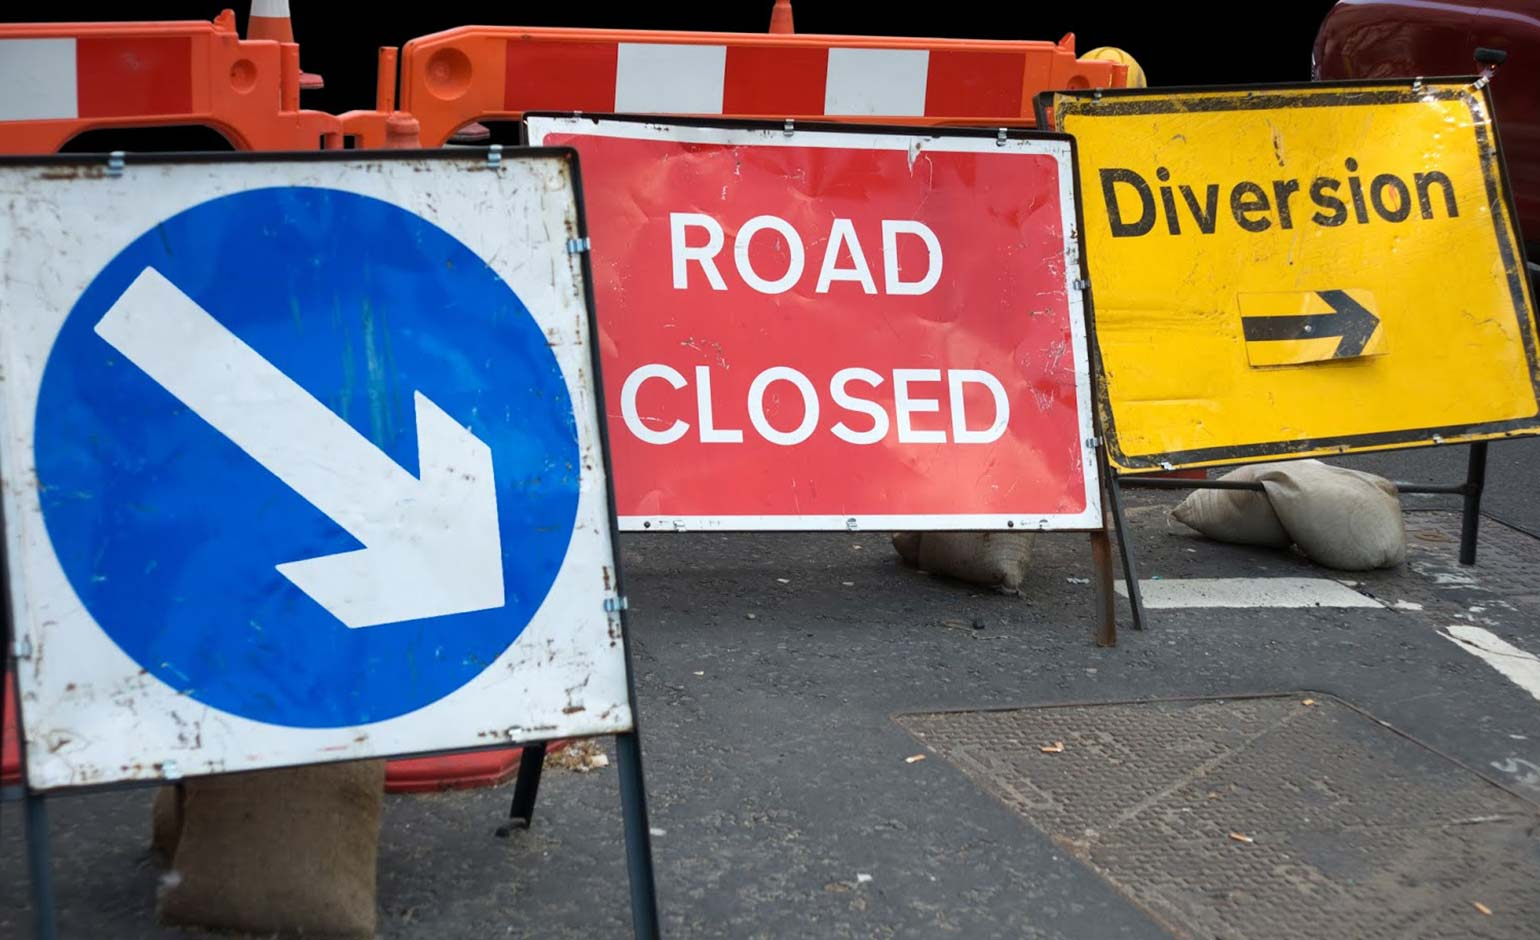 Council launches permit consultation in bid to reduce impact of roadworks | Bath Echo